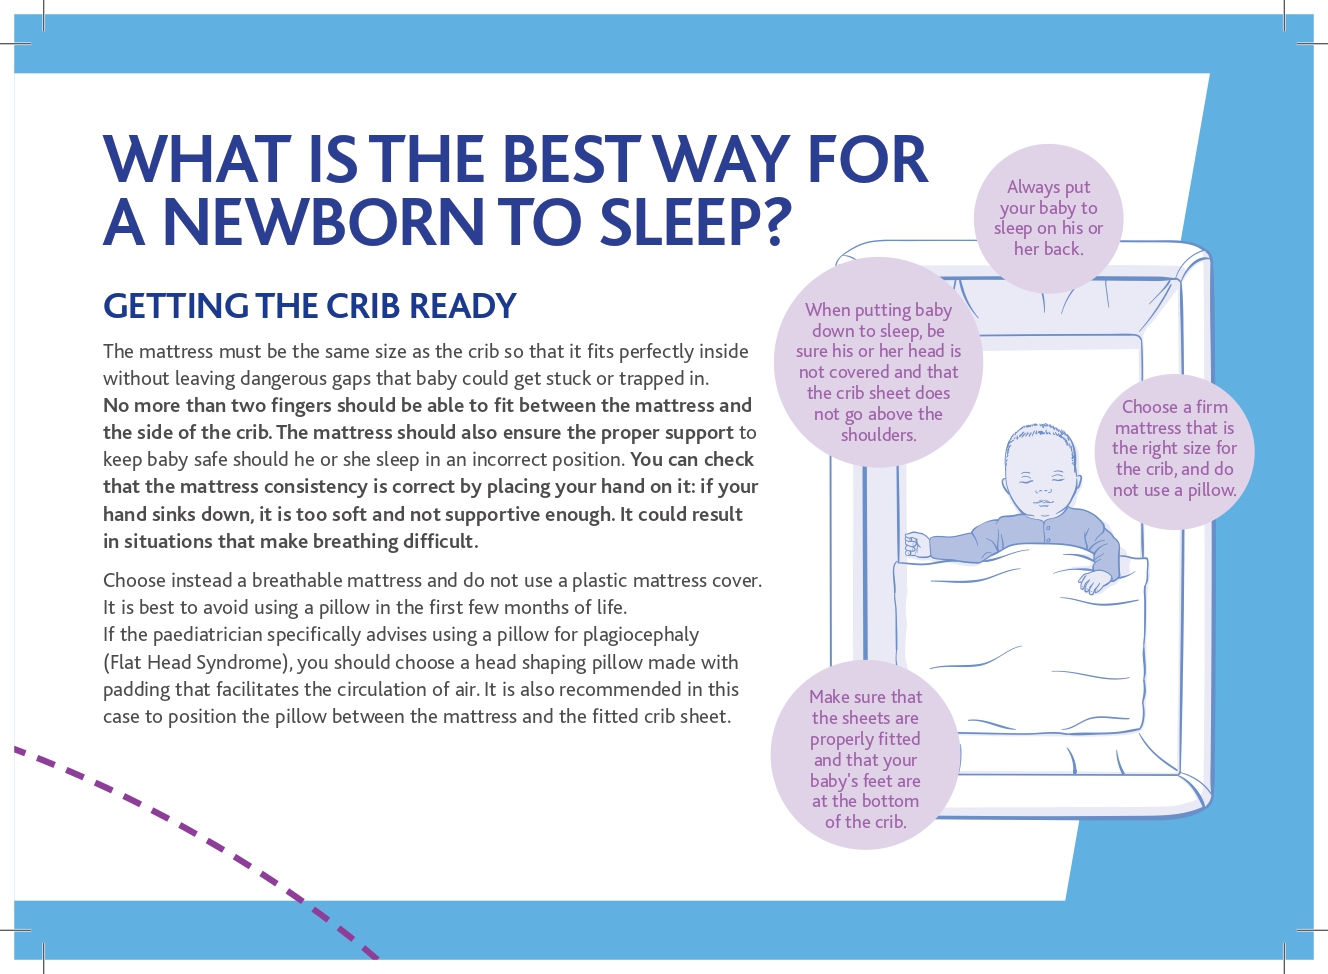 sleep-guide2019-eng-osservatorio-chicco-080319-page-0005.jpg